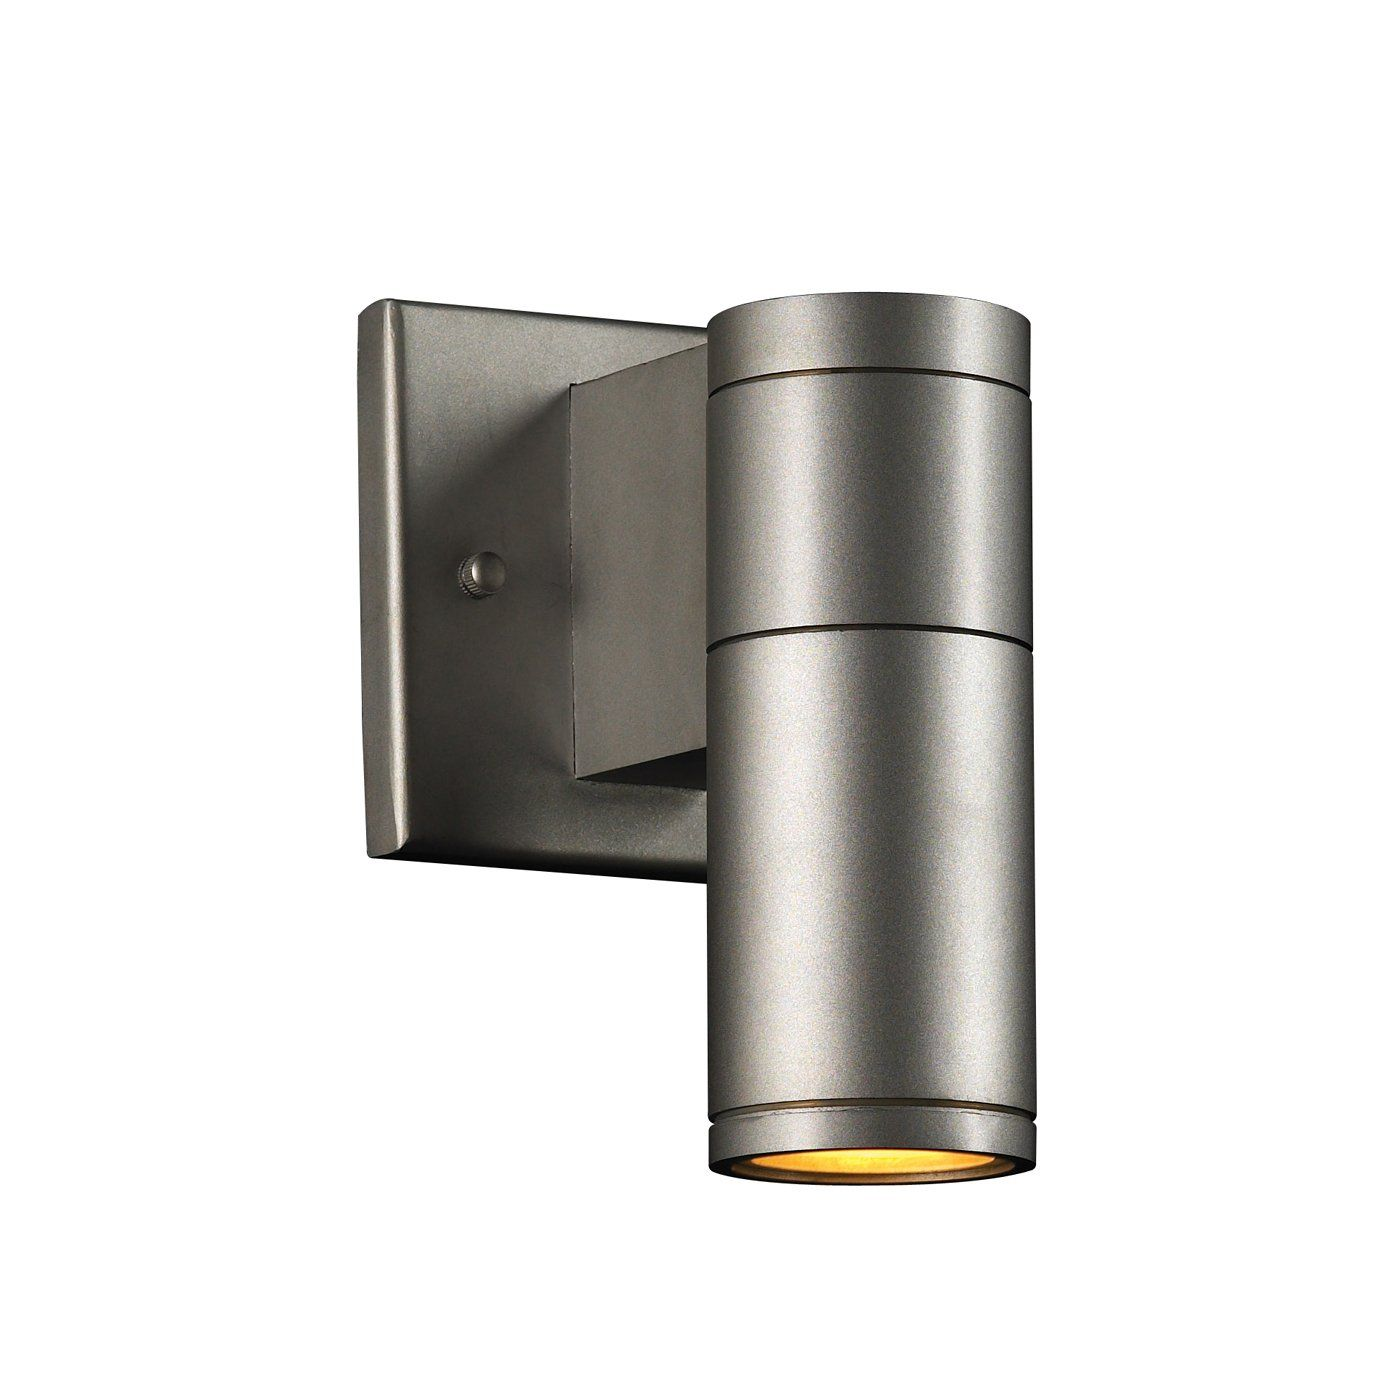 Plc lighting trolli outdoor sconce atg stores for the home